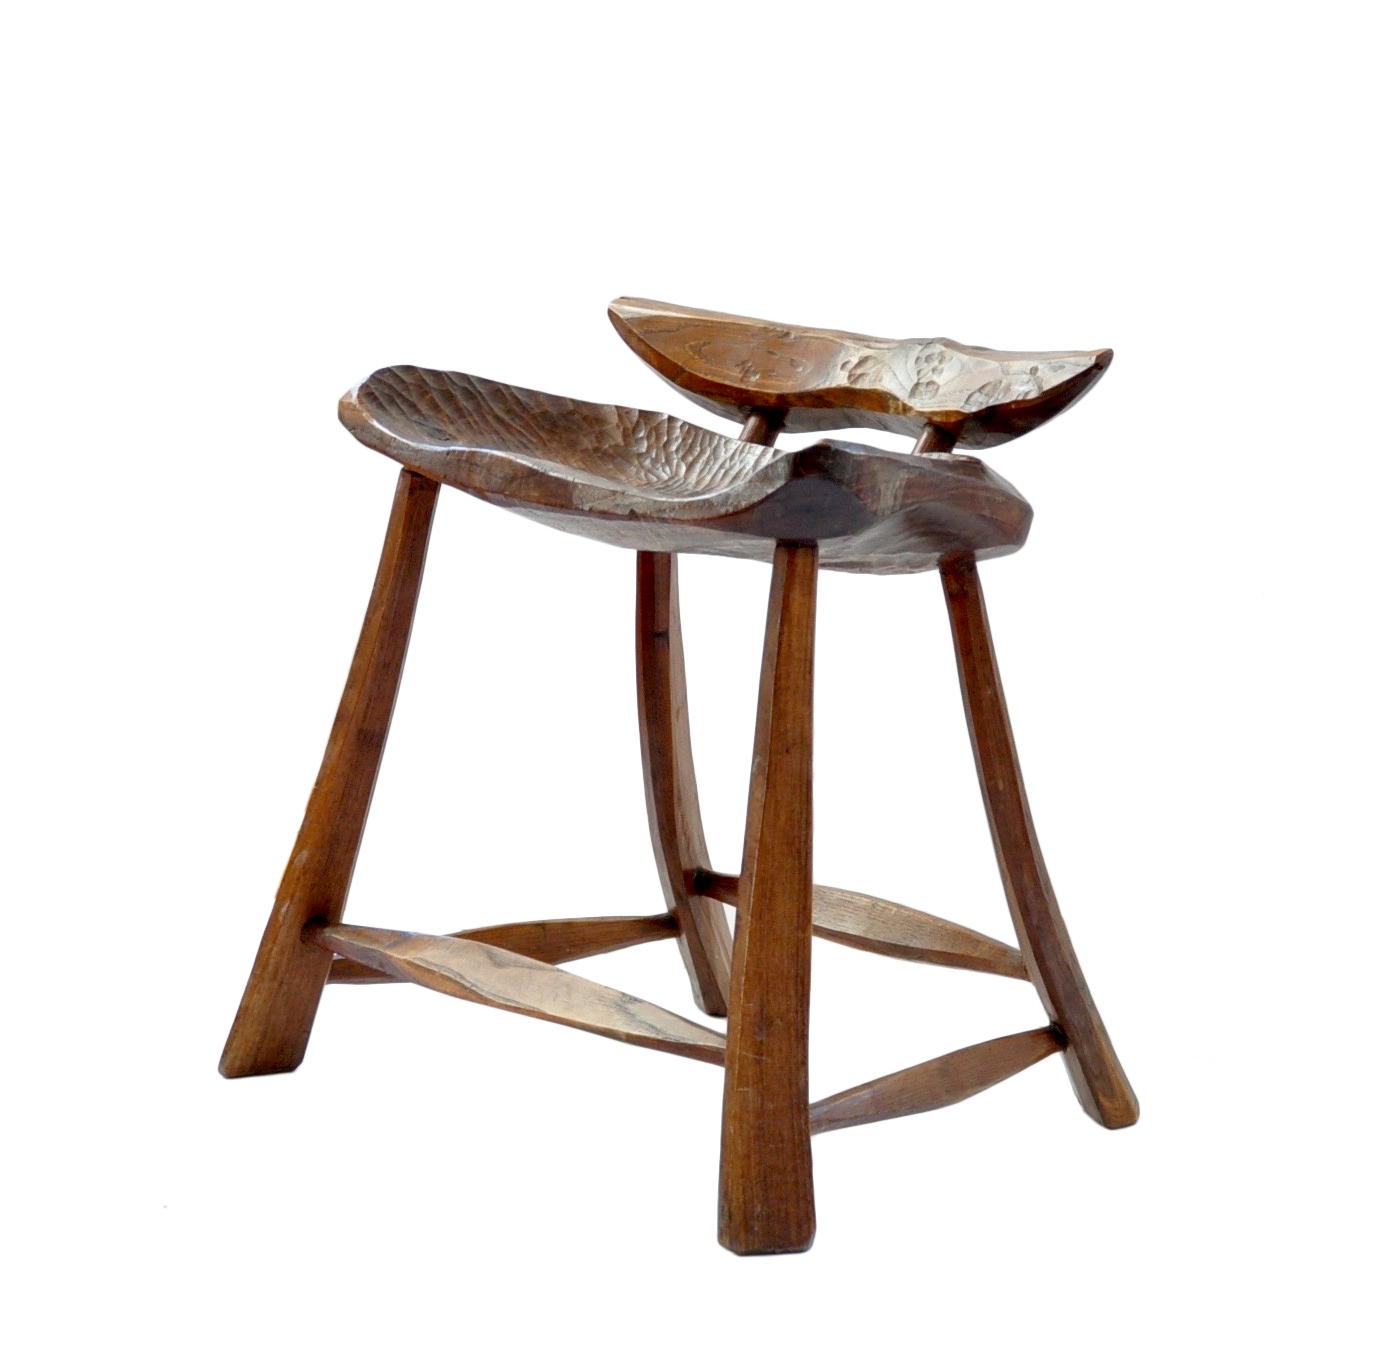 Carved Stool From The Meraggia Workshop Image